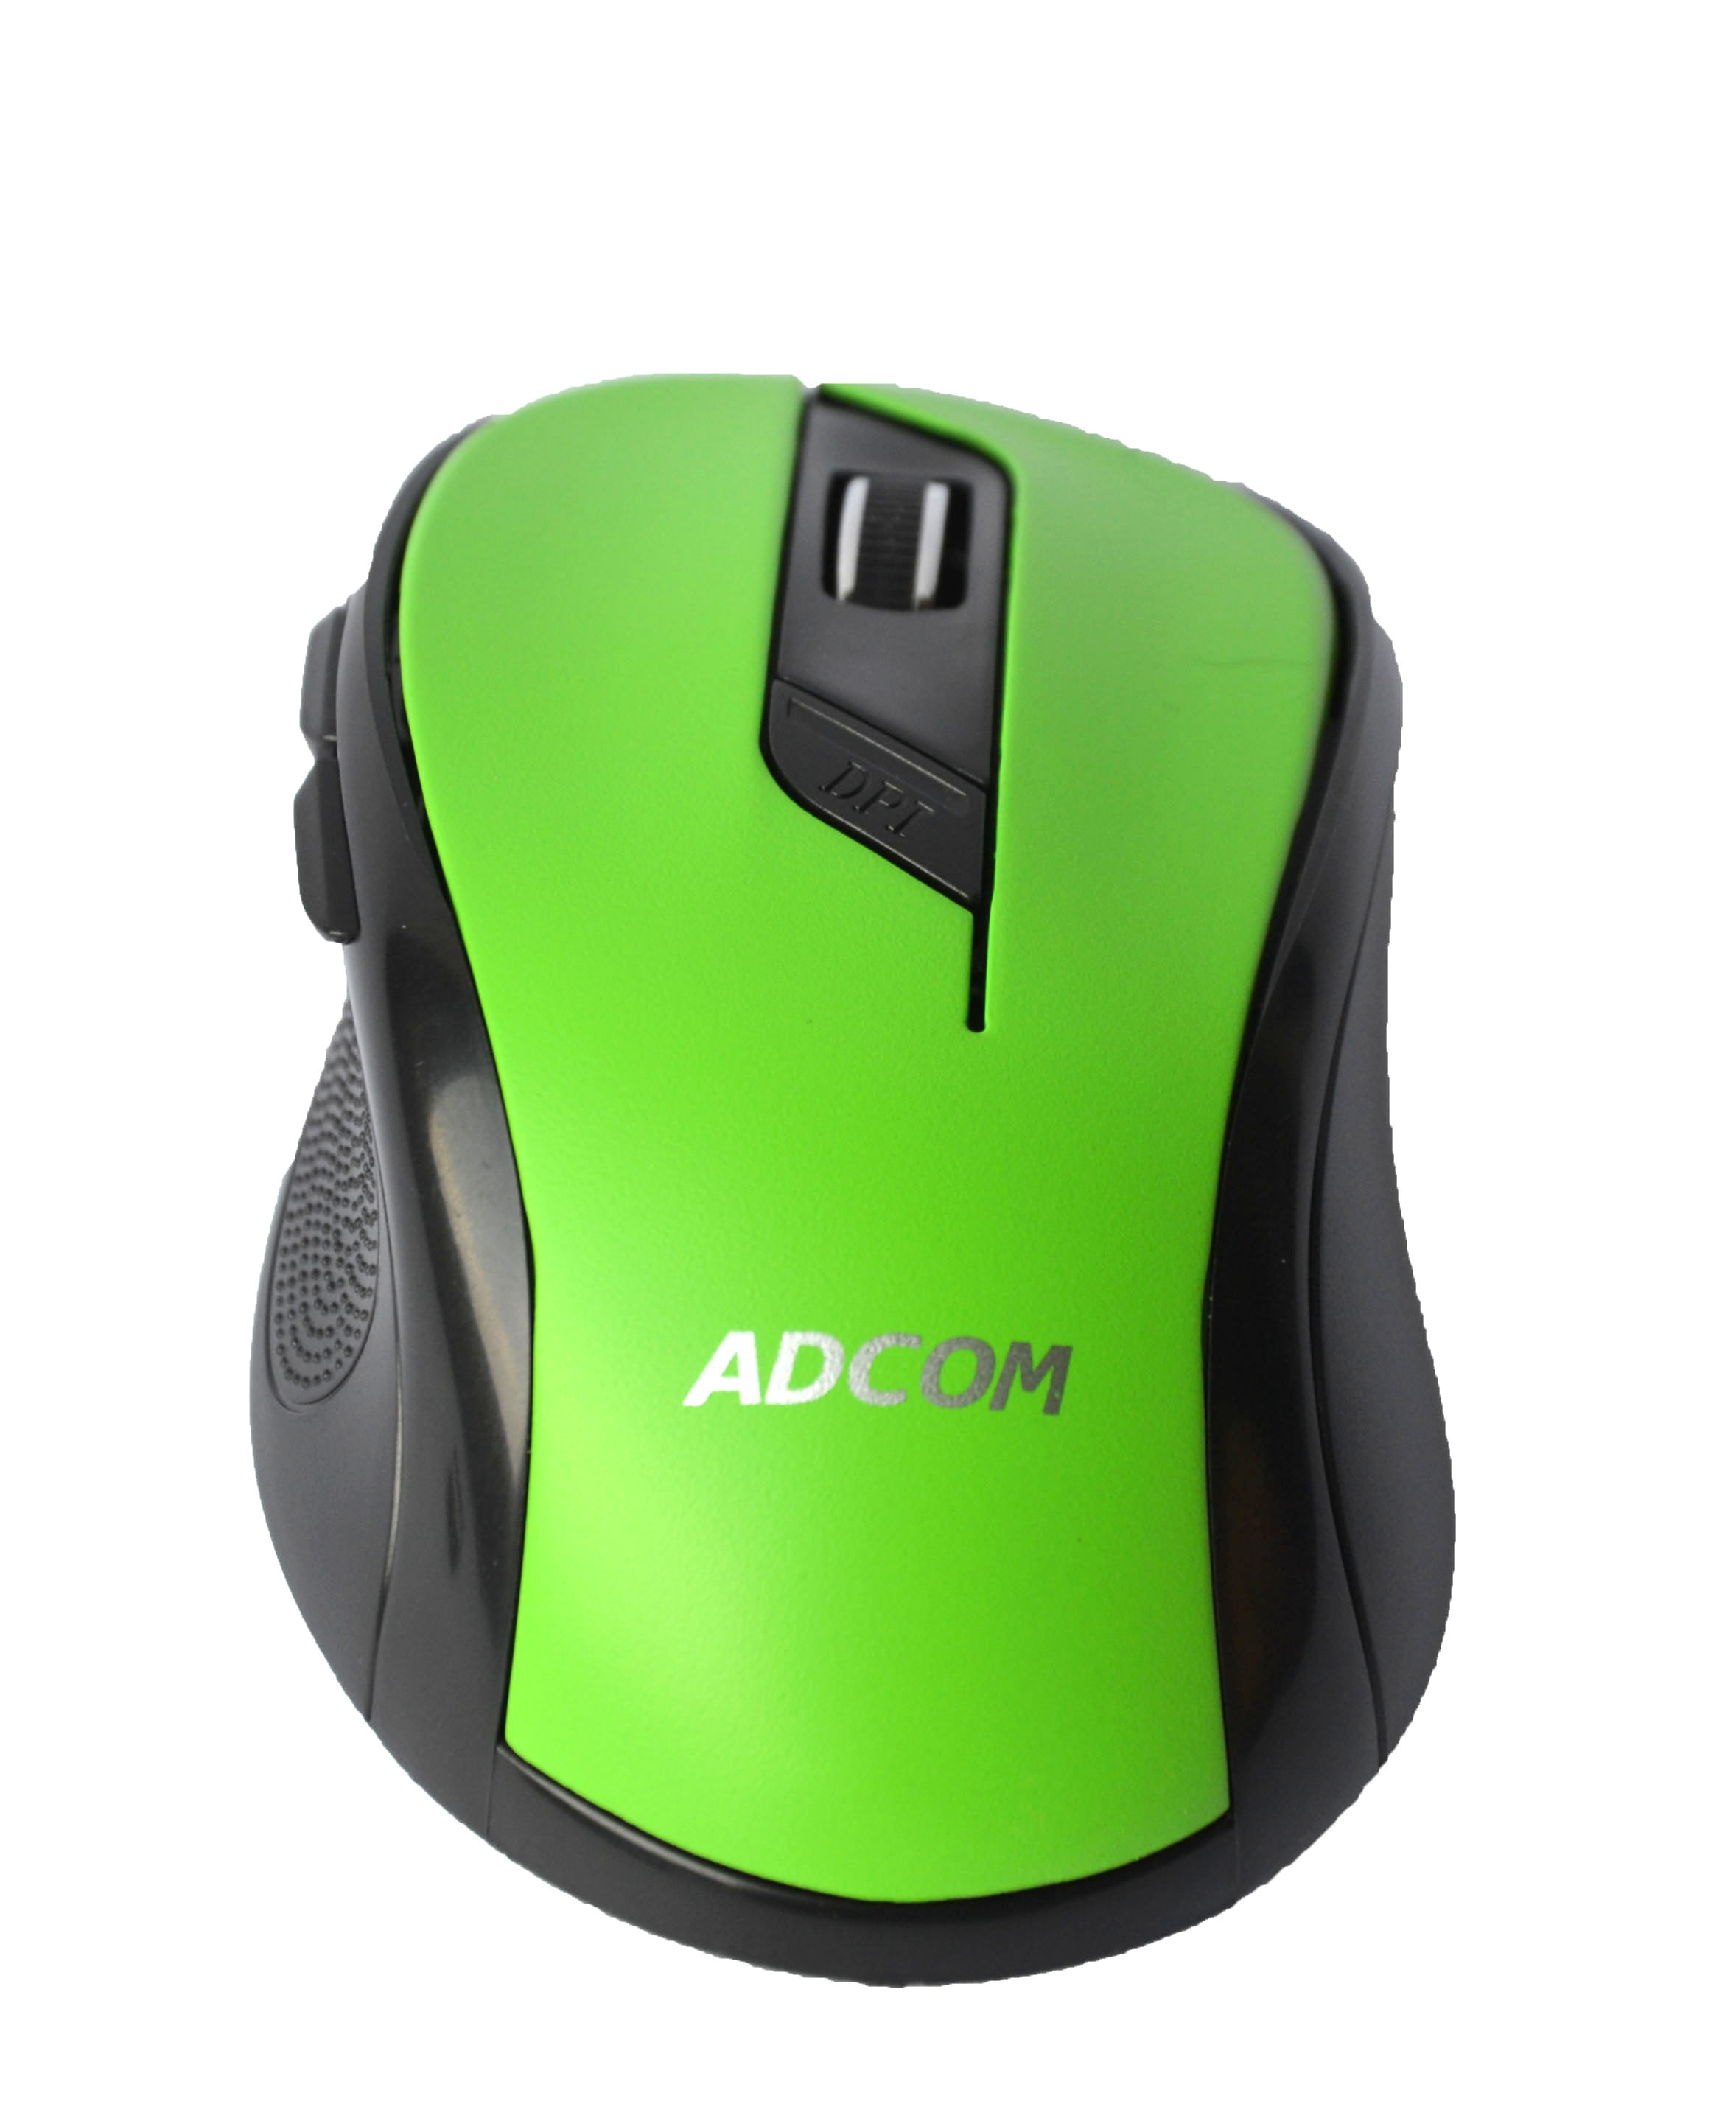 Adcom AD 6516W Wireless Mouse Portable Mobile Optical Mouse with USB Receiver.